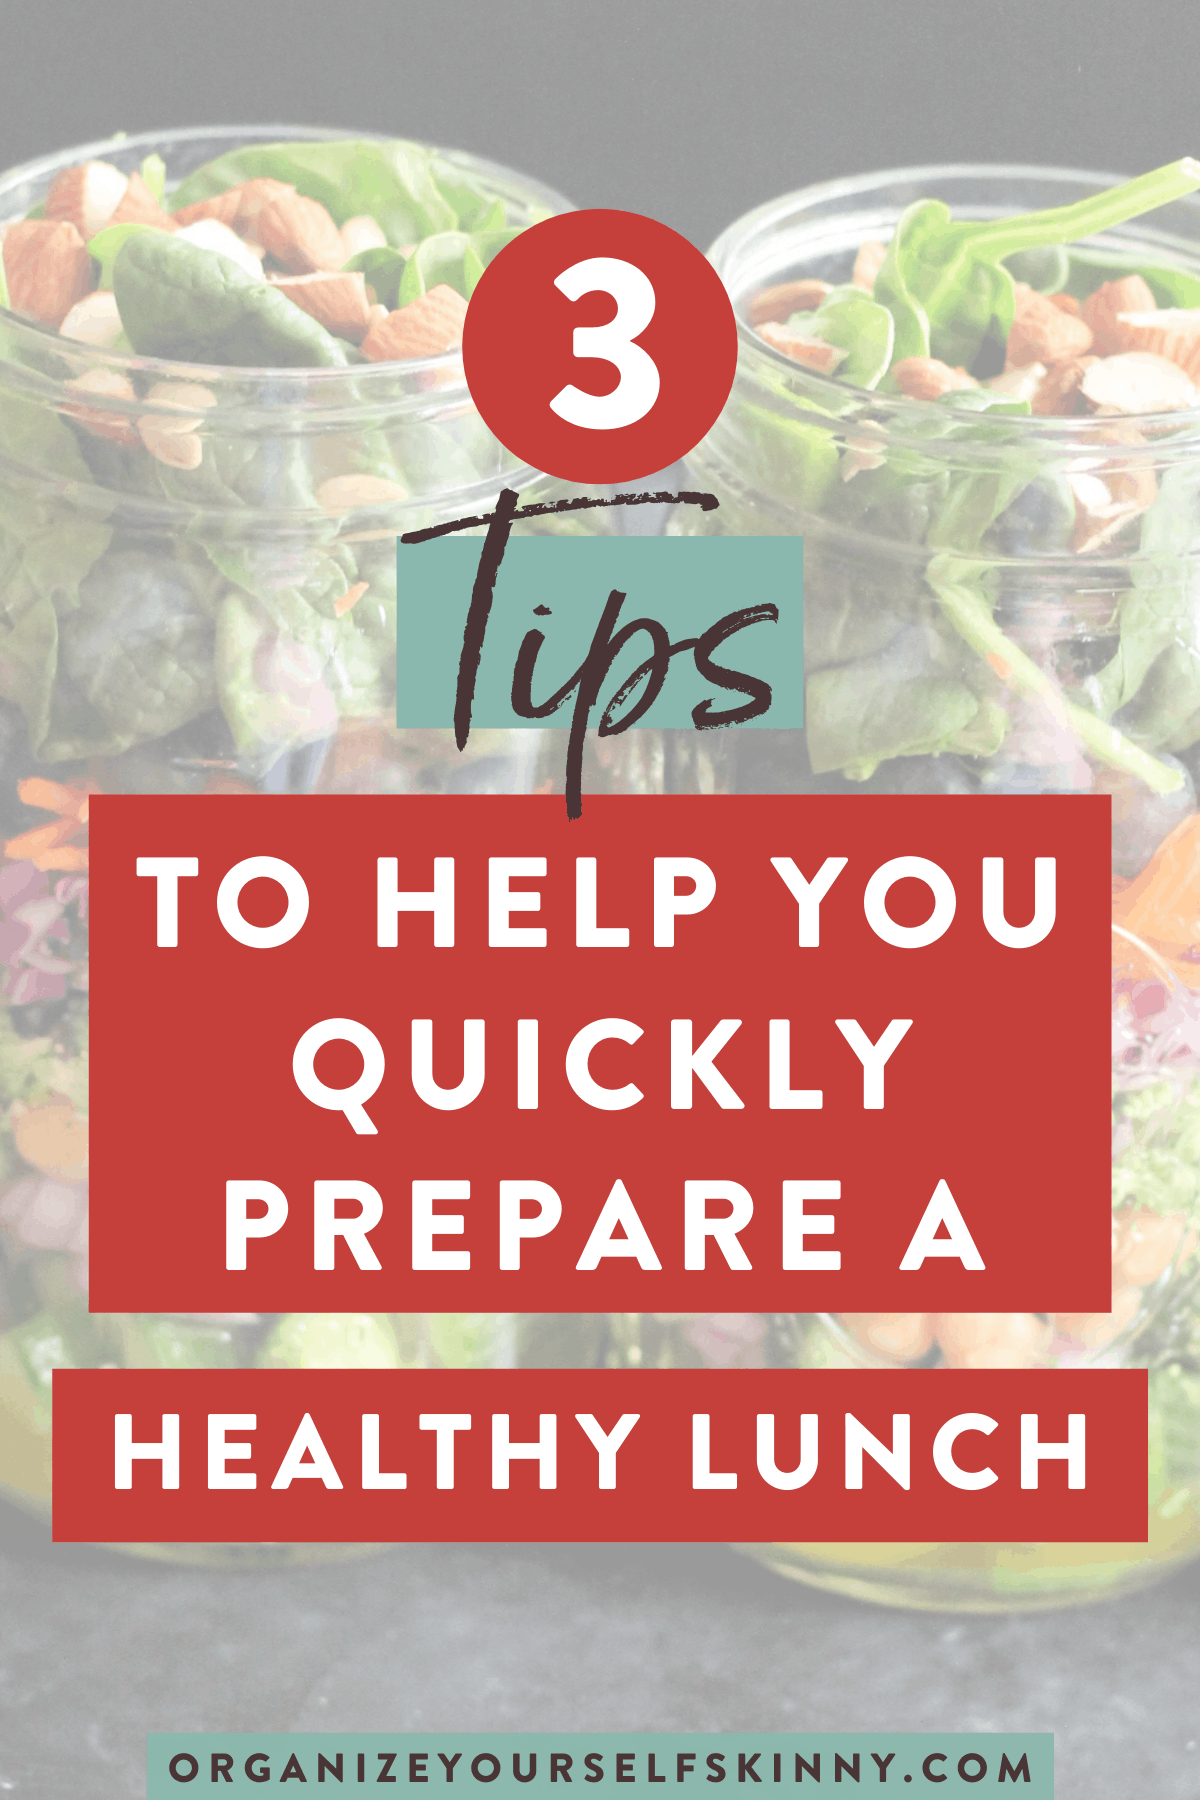 tips-to-help-you-quickly-prepare-a-healthy-lunch